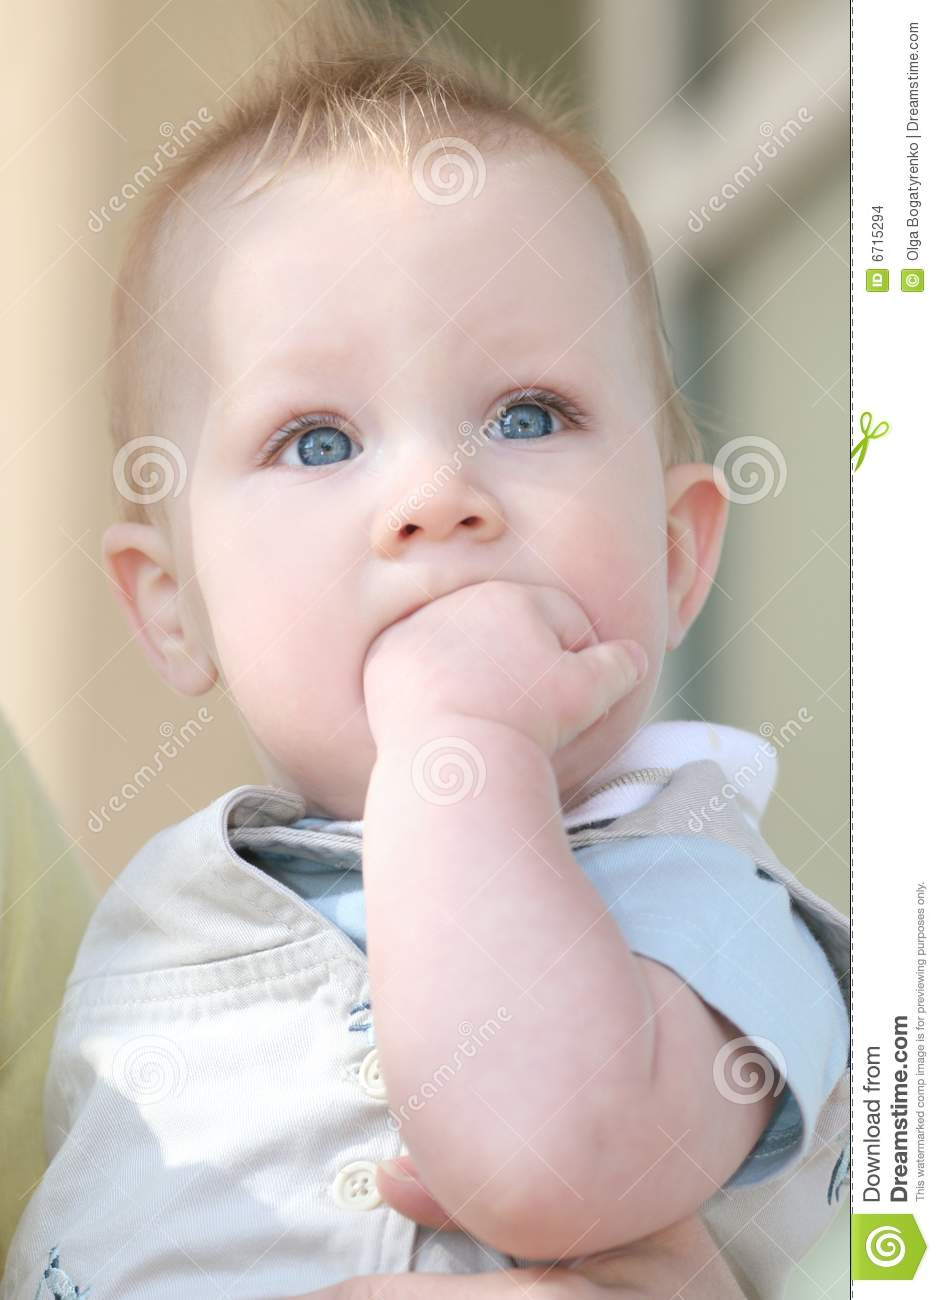 Adorable Blue Eyed Baby Boy Sad Stock Images - Image: 6715294